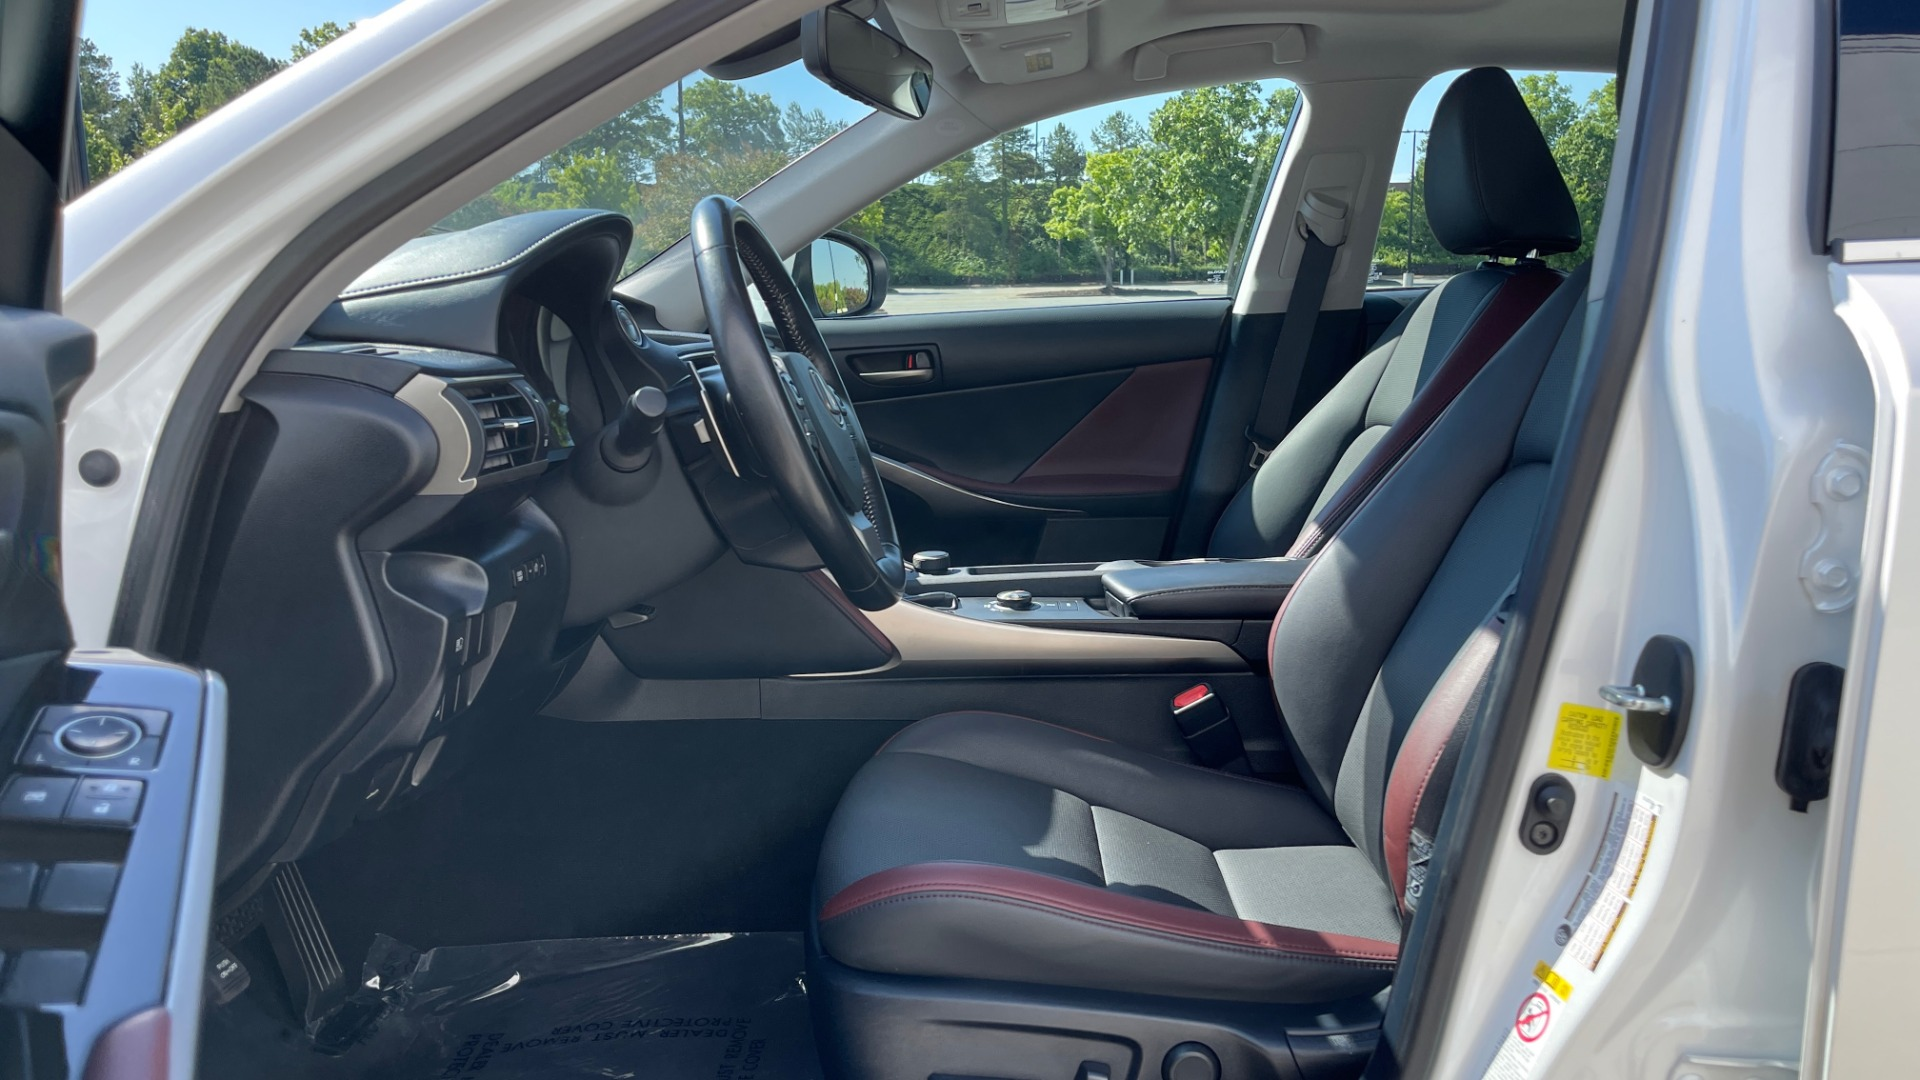 Used 2018 Lexus IS 300 / 2.0L TURBO / 8-SPD AUTO / SUNROOF / REARVIEW for sale $29,495 at Formula Imports in Charlotte NC 28227 29